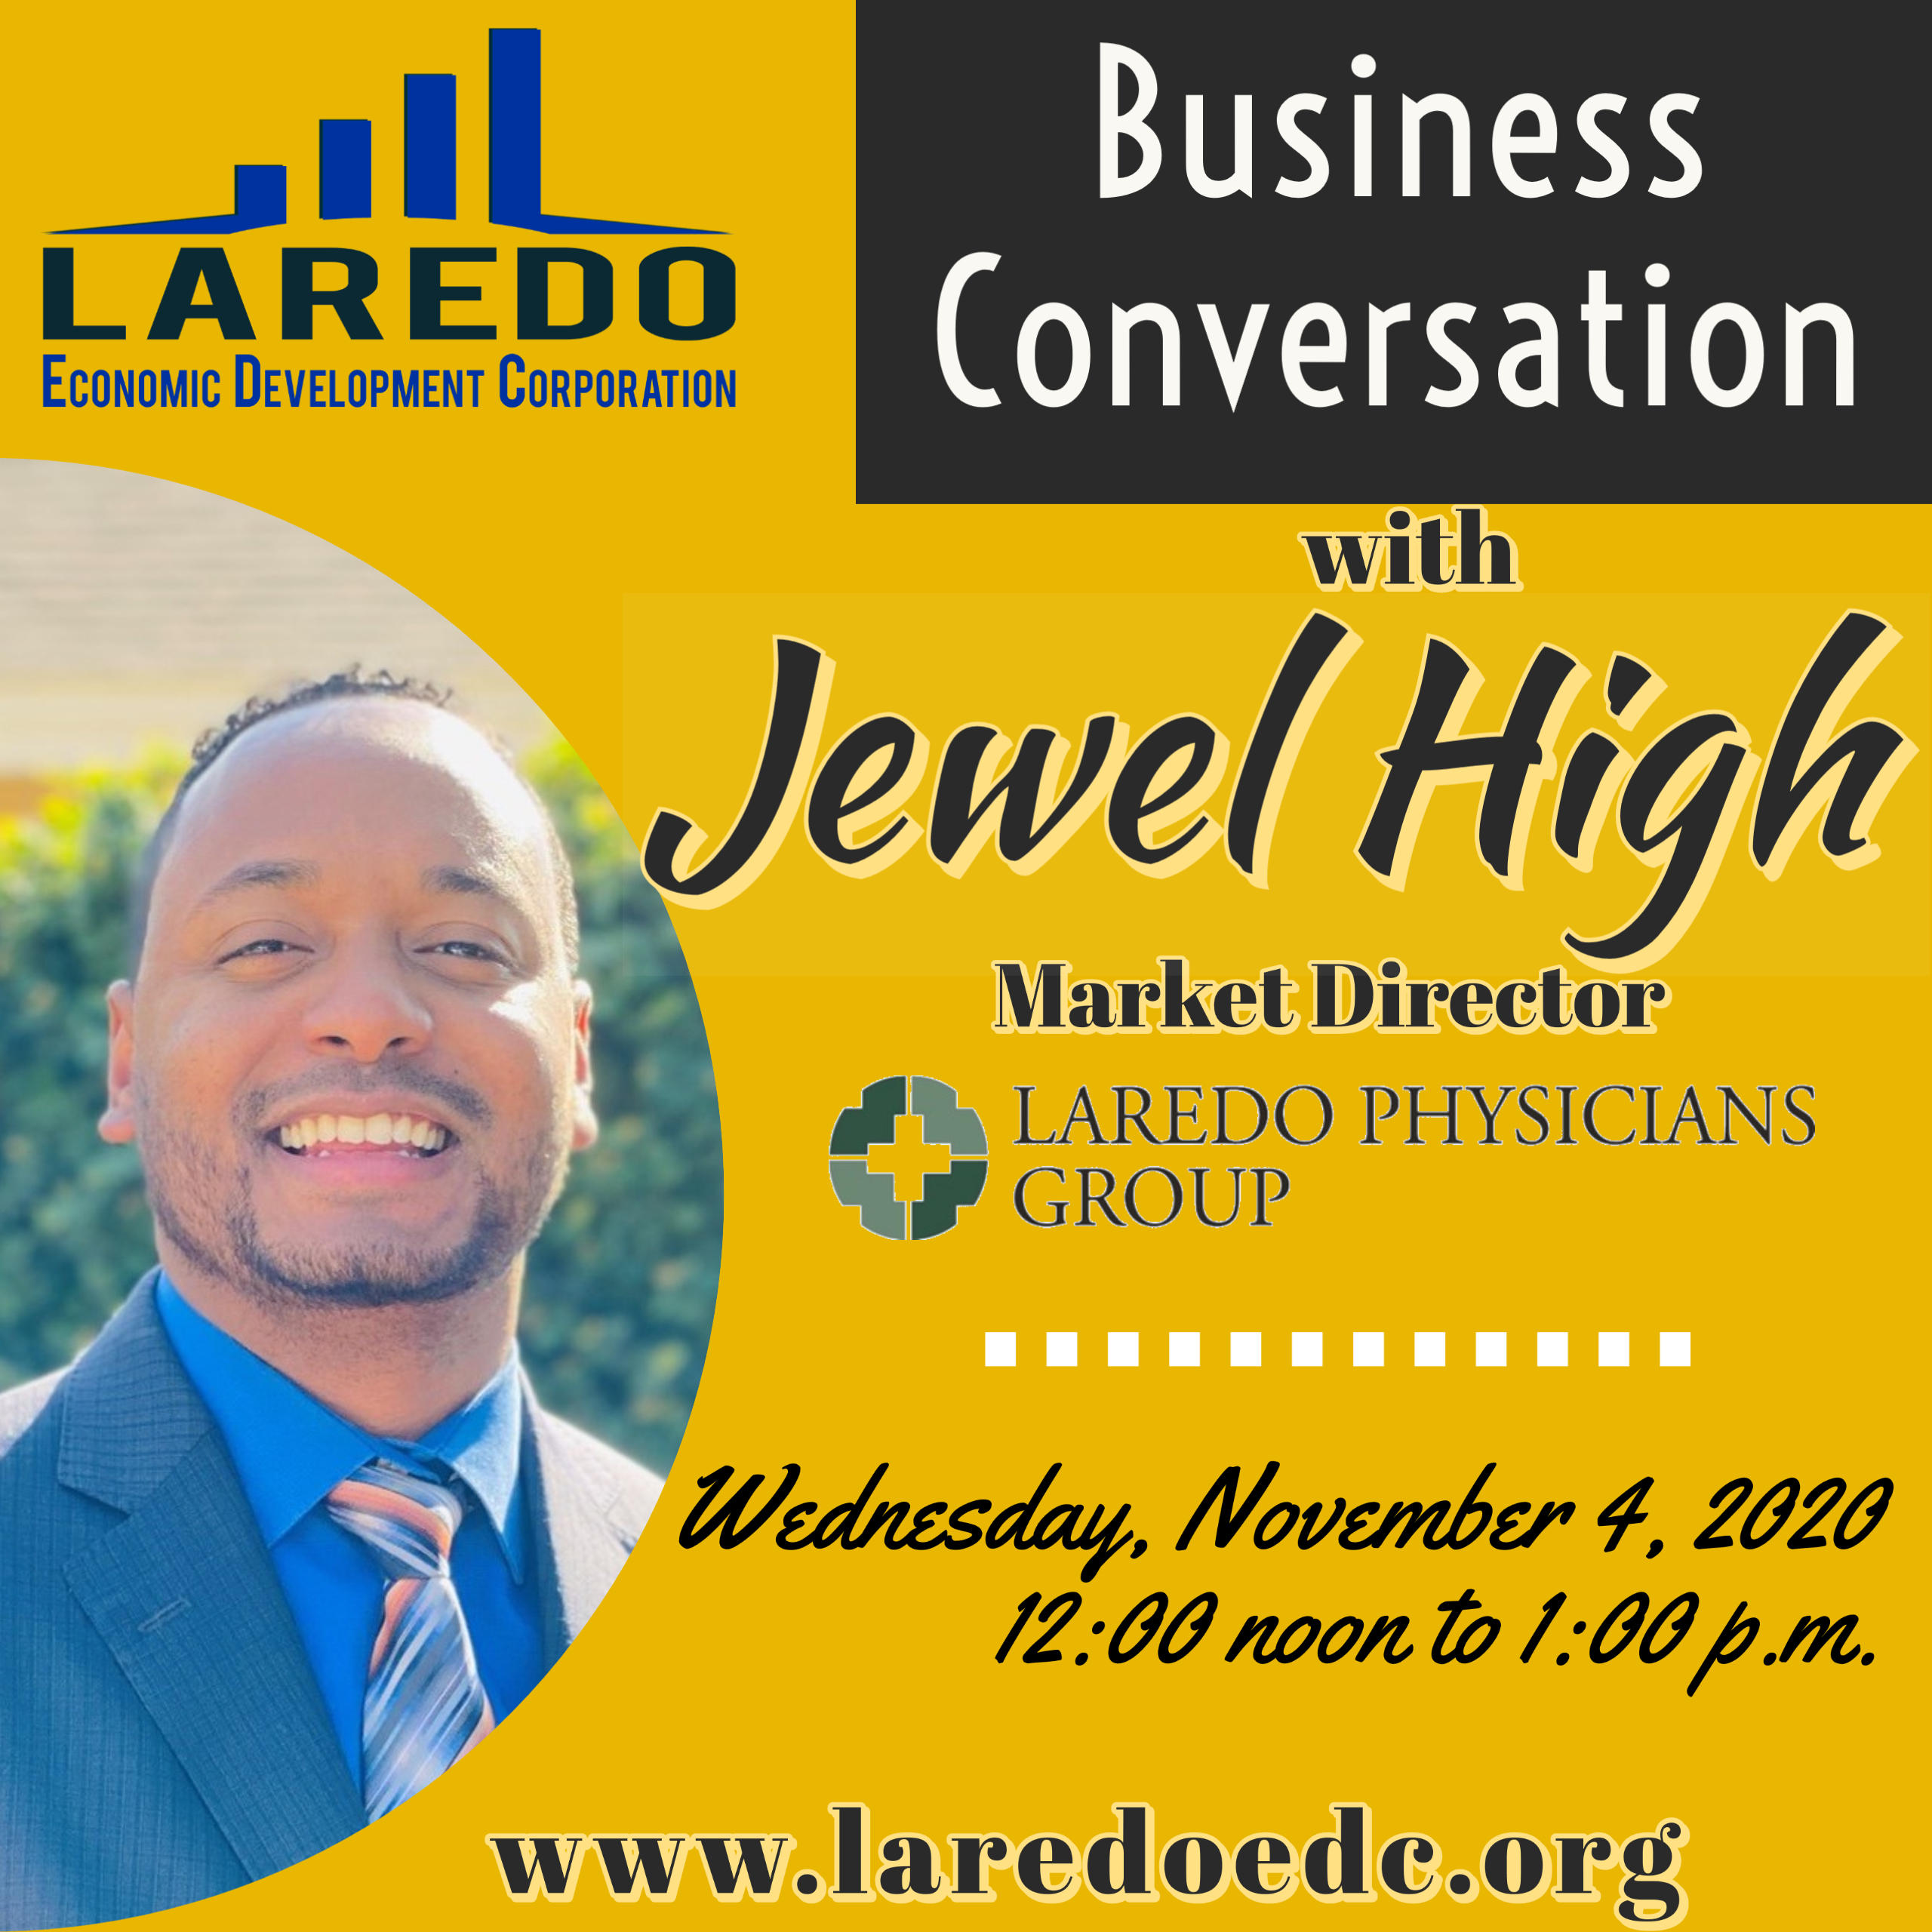 LEDC Business Conversation Meeting with Jewel High